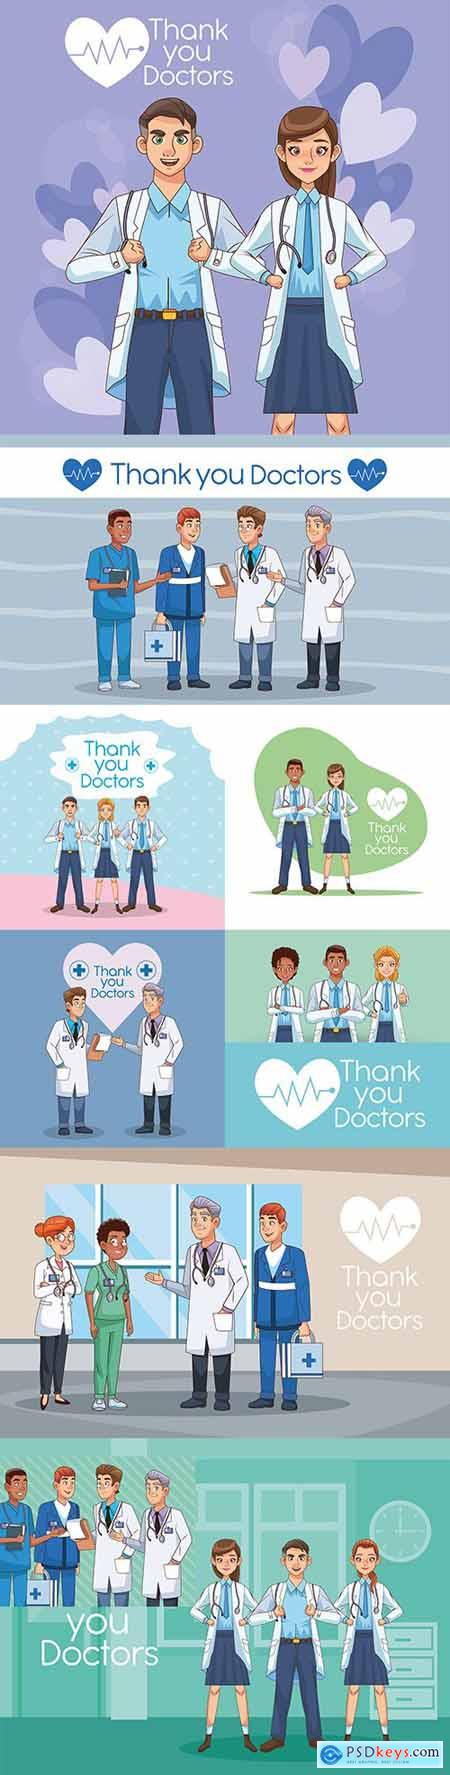 Thank you professionals doctors characters illustration